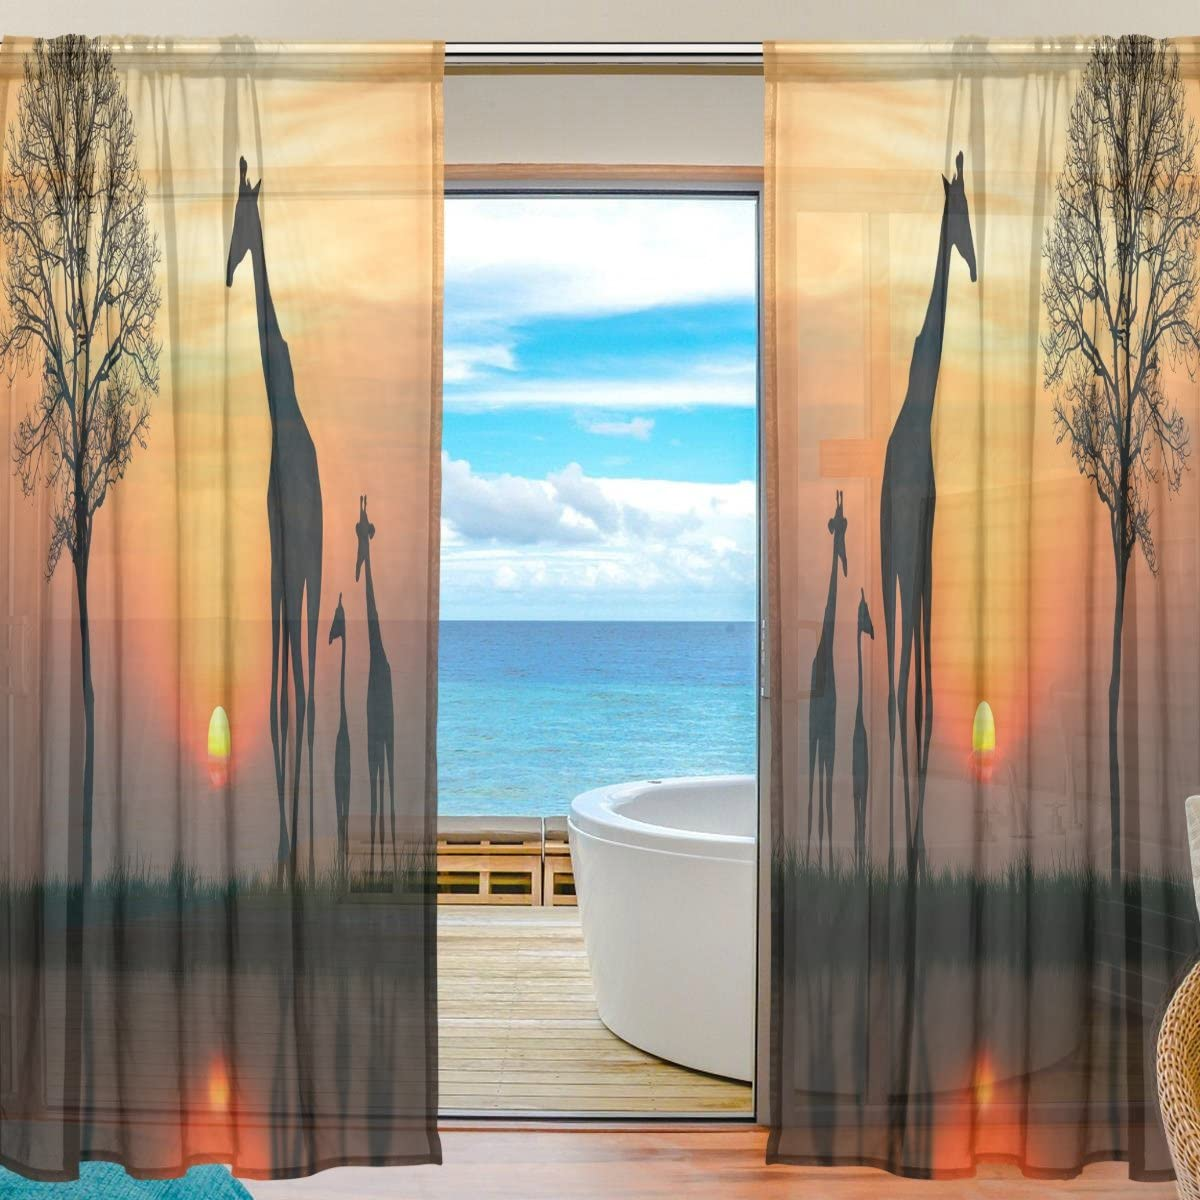 Oreayn African Wildlife Giraffe Sunset Sheer Curtain for Living Room Bedroom,55 x 84 Inches Long,Orange,Window Treatments,Rod Pocket,Polyester Fabric,Set of 2 Panels